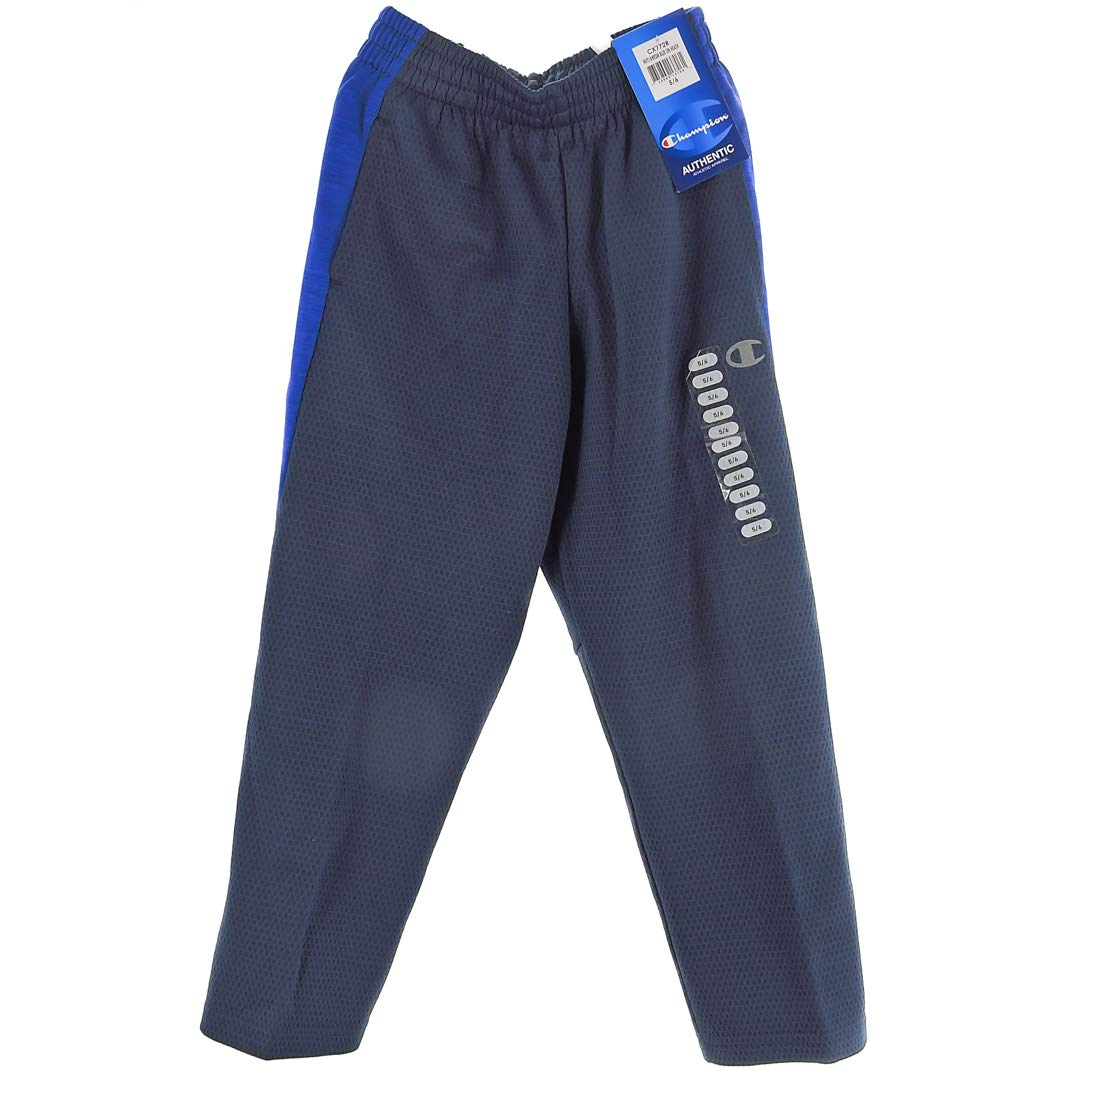 Champion Authentic Boys MESH Pants (Navy Awesome Blue, 5) by Champion